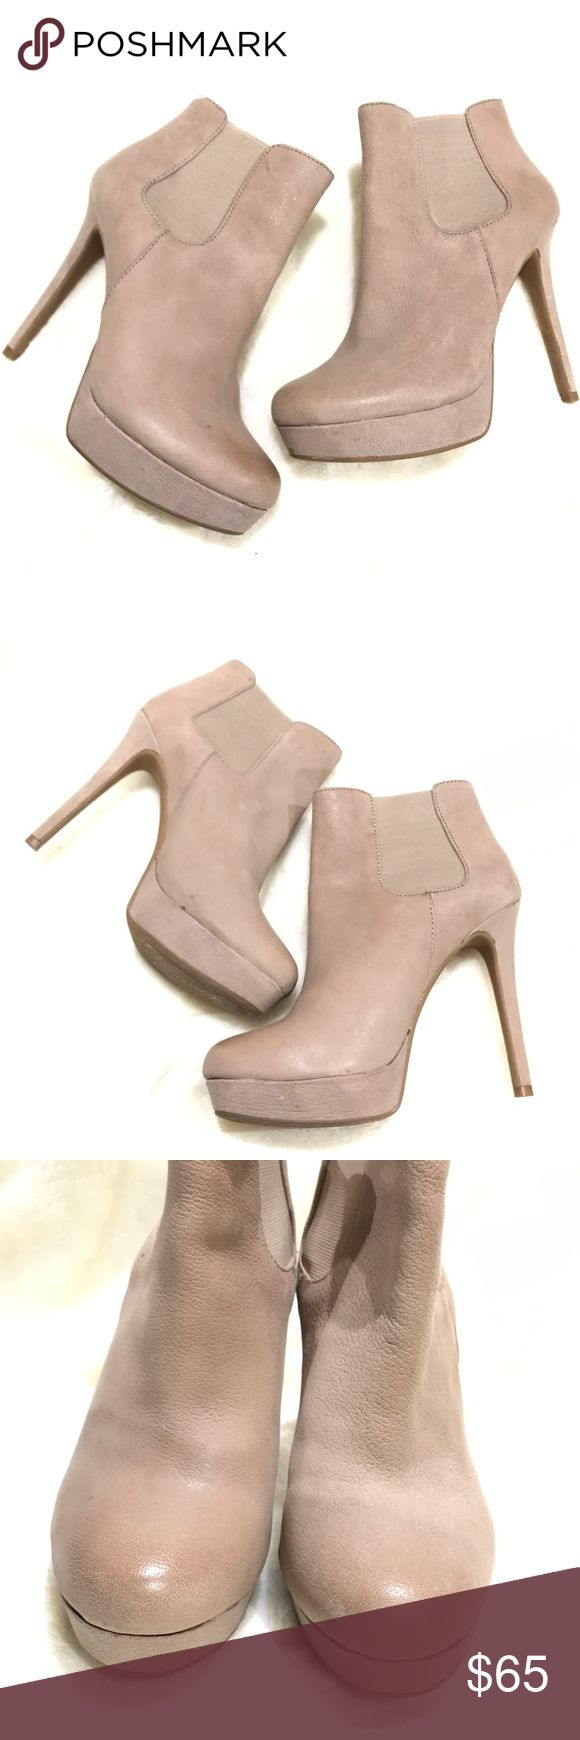 """Gianni Bini Nikka Booties Nude distressed leather platform booties with round toe and leather covered stiletto heel. 4.7"""" covered platform and heel. Elastic inserts on each side for easy pull. In excellent condition with no visible scratches or marks. Gianni Bini Shoes Ankle Boots & Booties"""